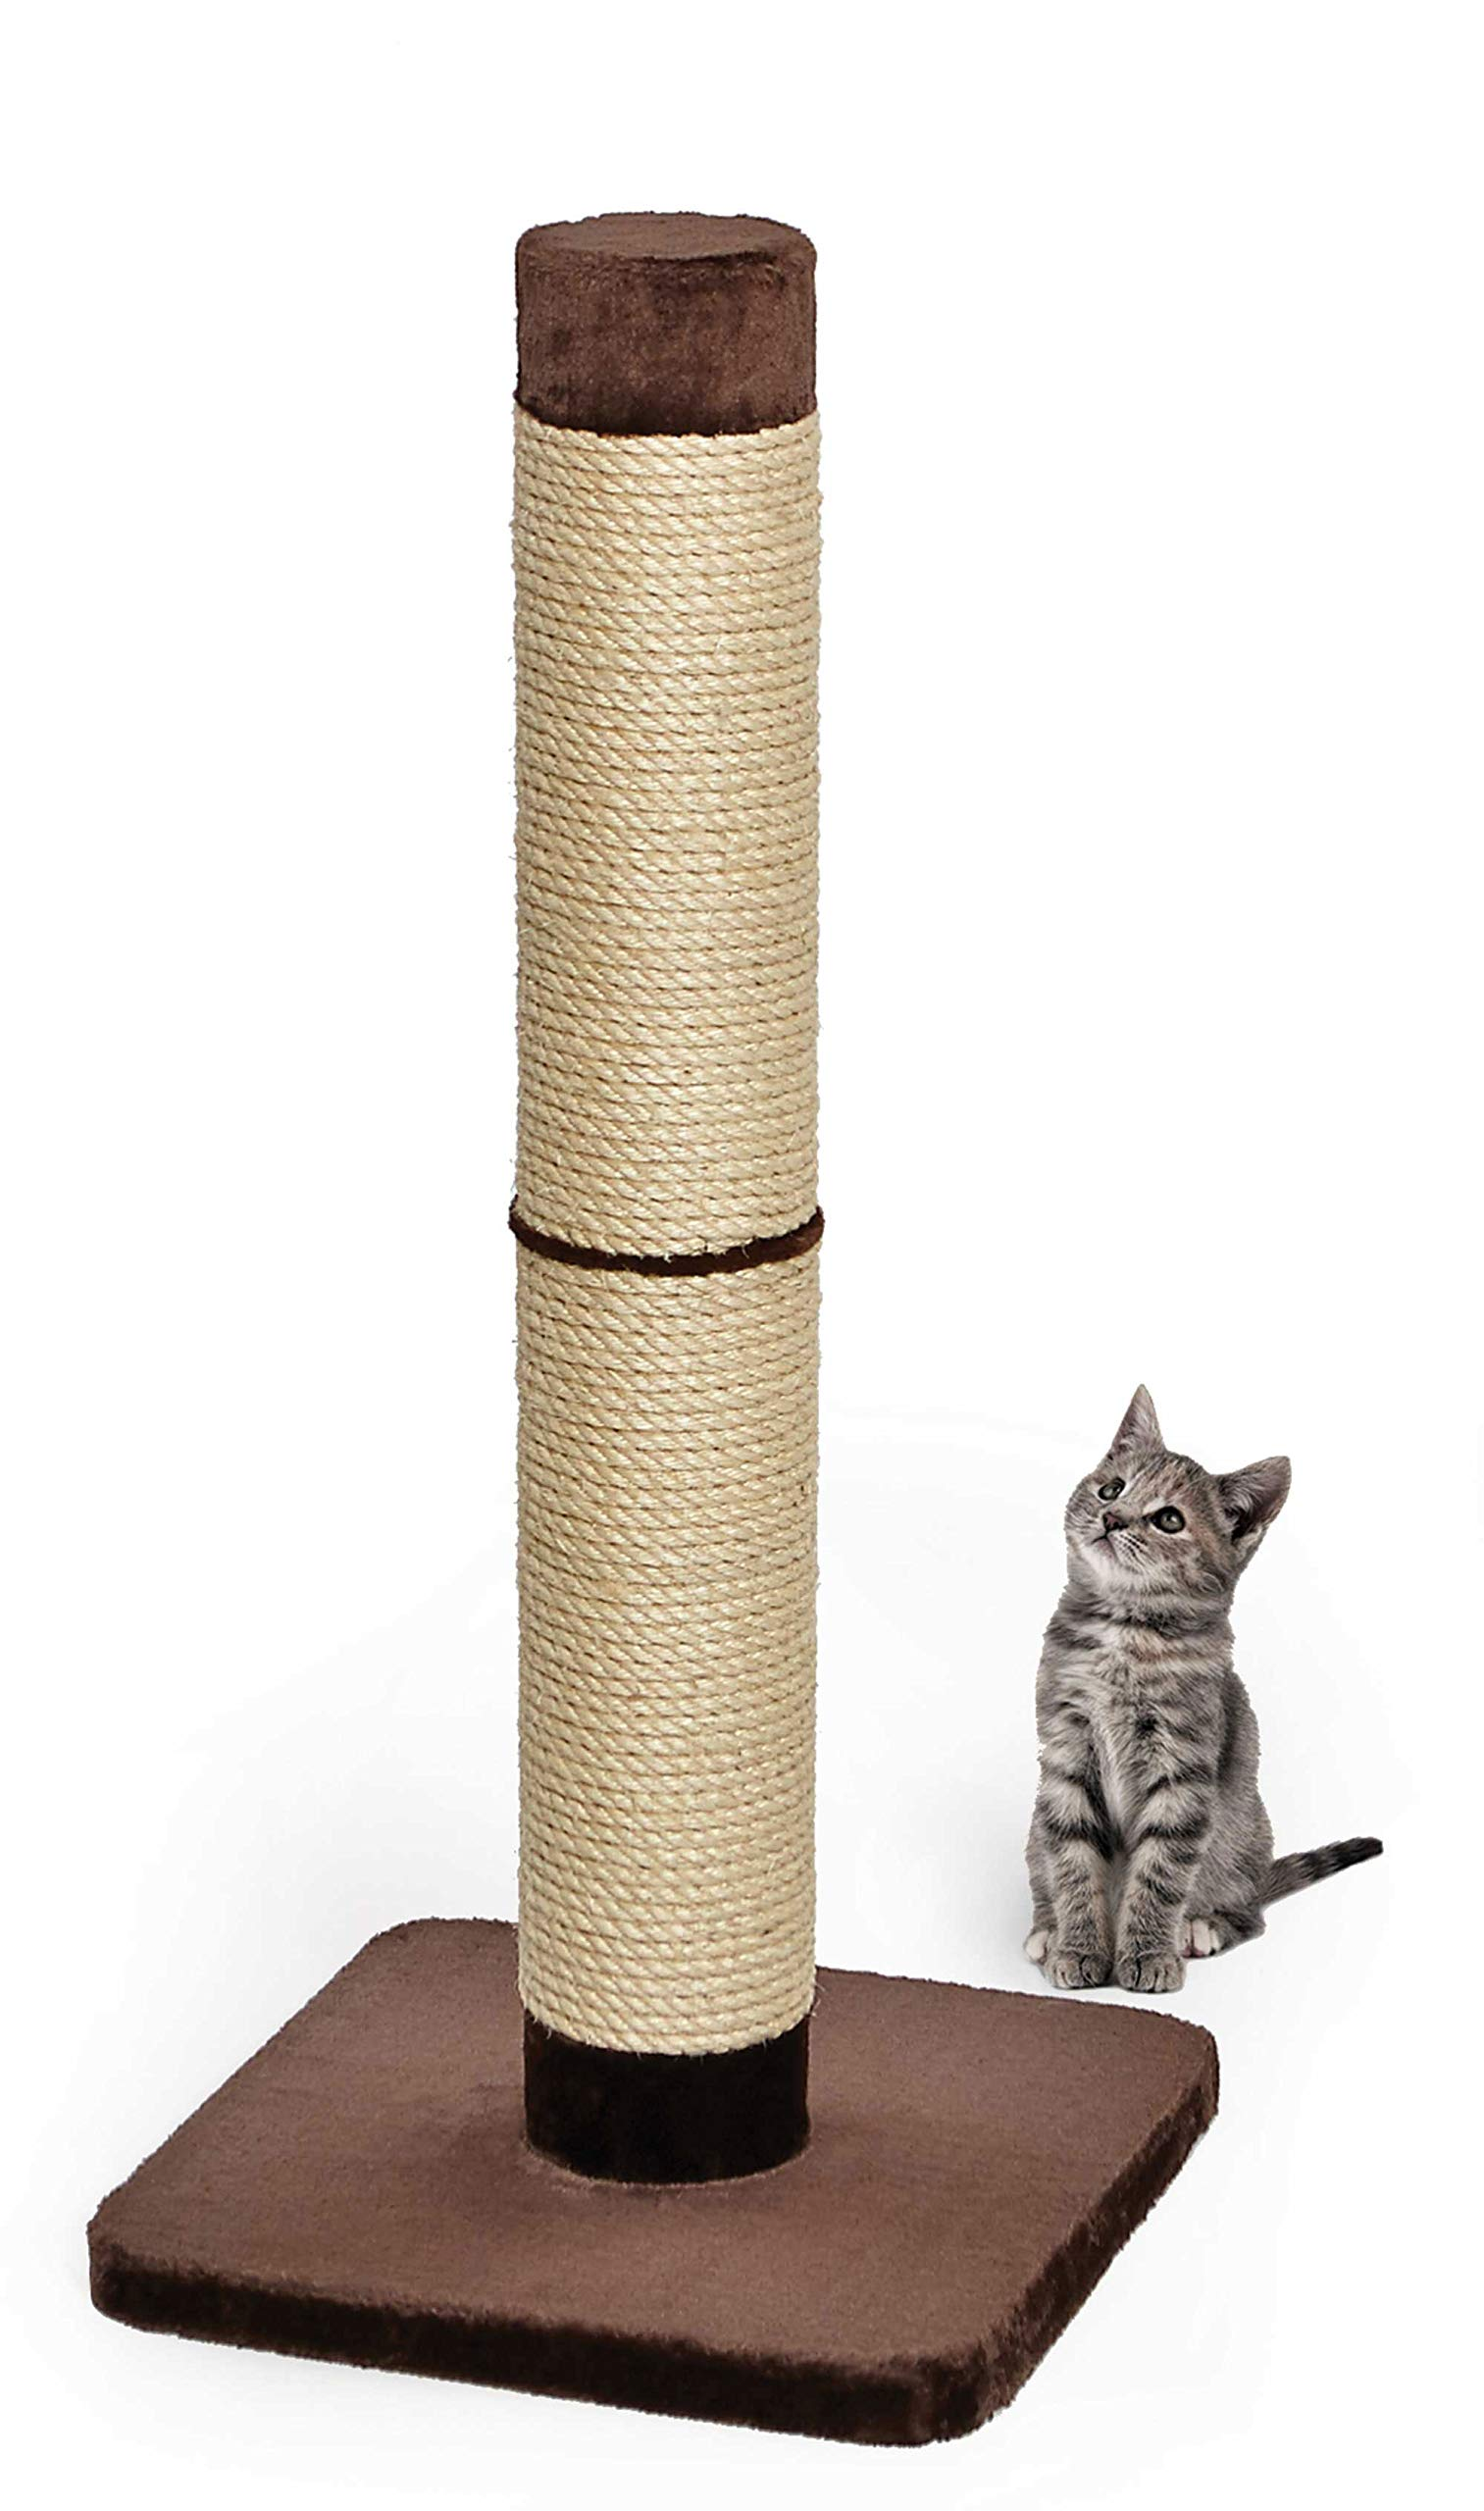 MidWest Homes for Pets Cat Scratching Post | Forte Huge Cat Scratching Post w/Extra-Durable Sisal Wrap, Brown & Tan, Giant XXL Cat Post by MidWest Homes for Pets